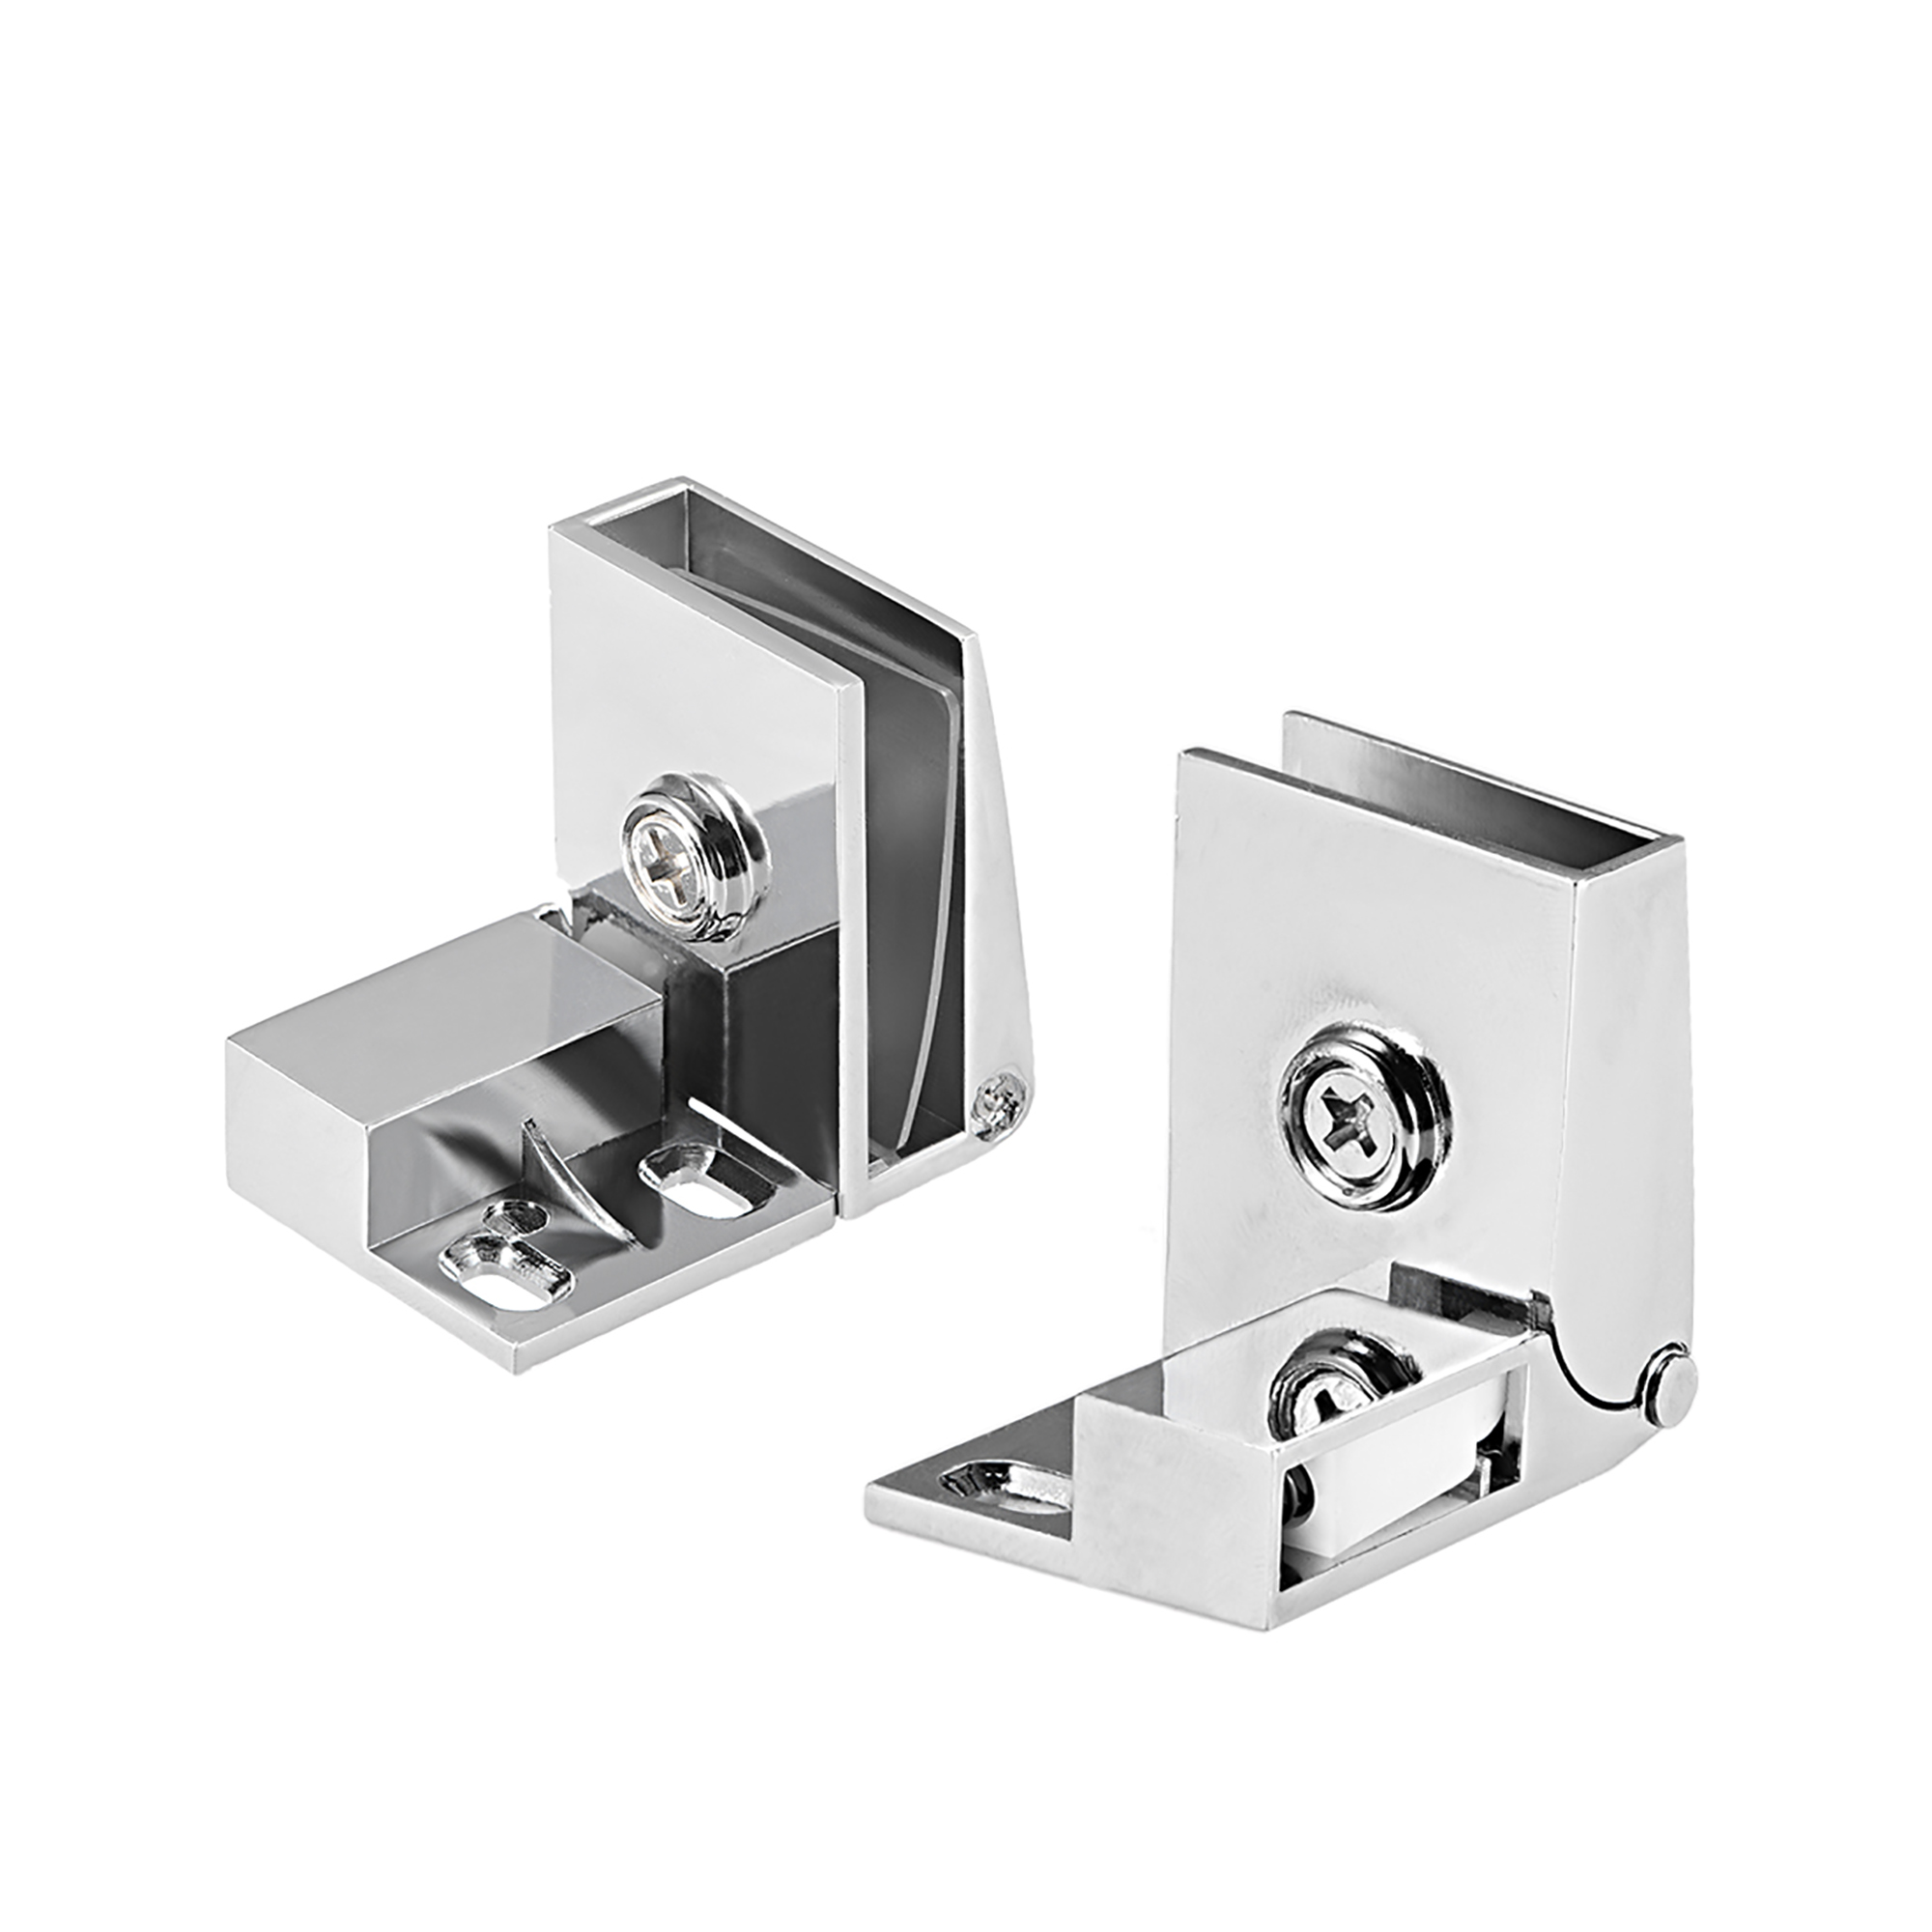 Uxcell 1Pair Glass Door Showcase Cabinet Door Hinge Glass Clamp for3-5mm Thickness - image 4 of 4